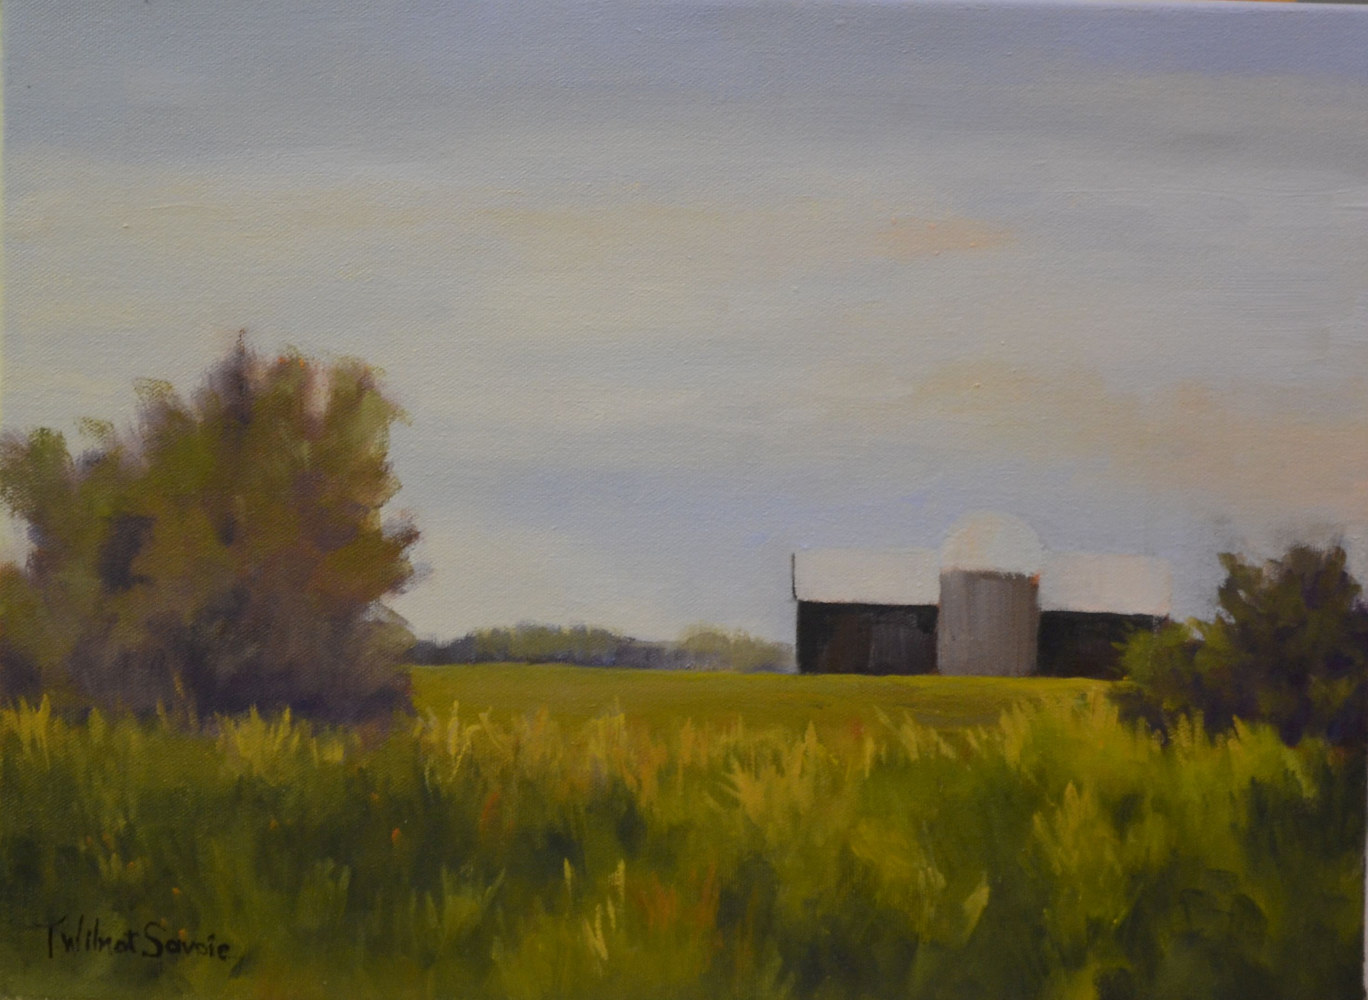 Still Standing - oil on canvas 12 x 16  13-0616 by Patricia Savoie